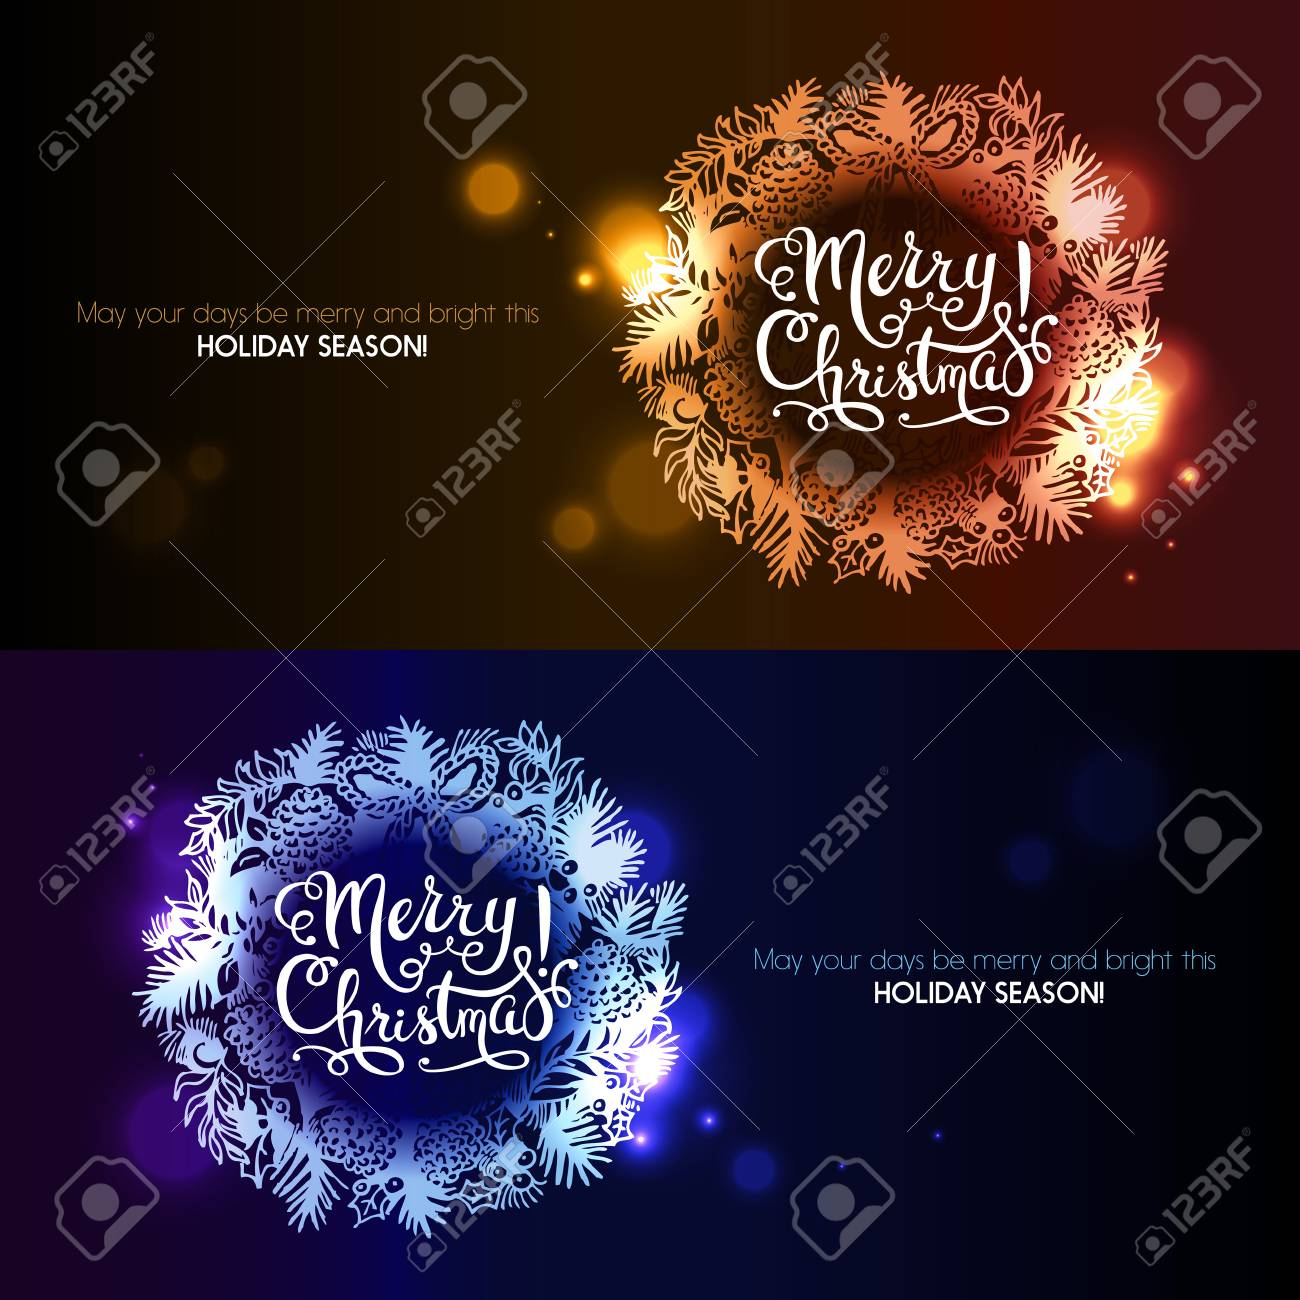 merry christmas hand drawn sketch gold glossy wreath banner set happy new year cards stock